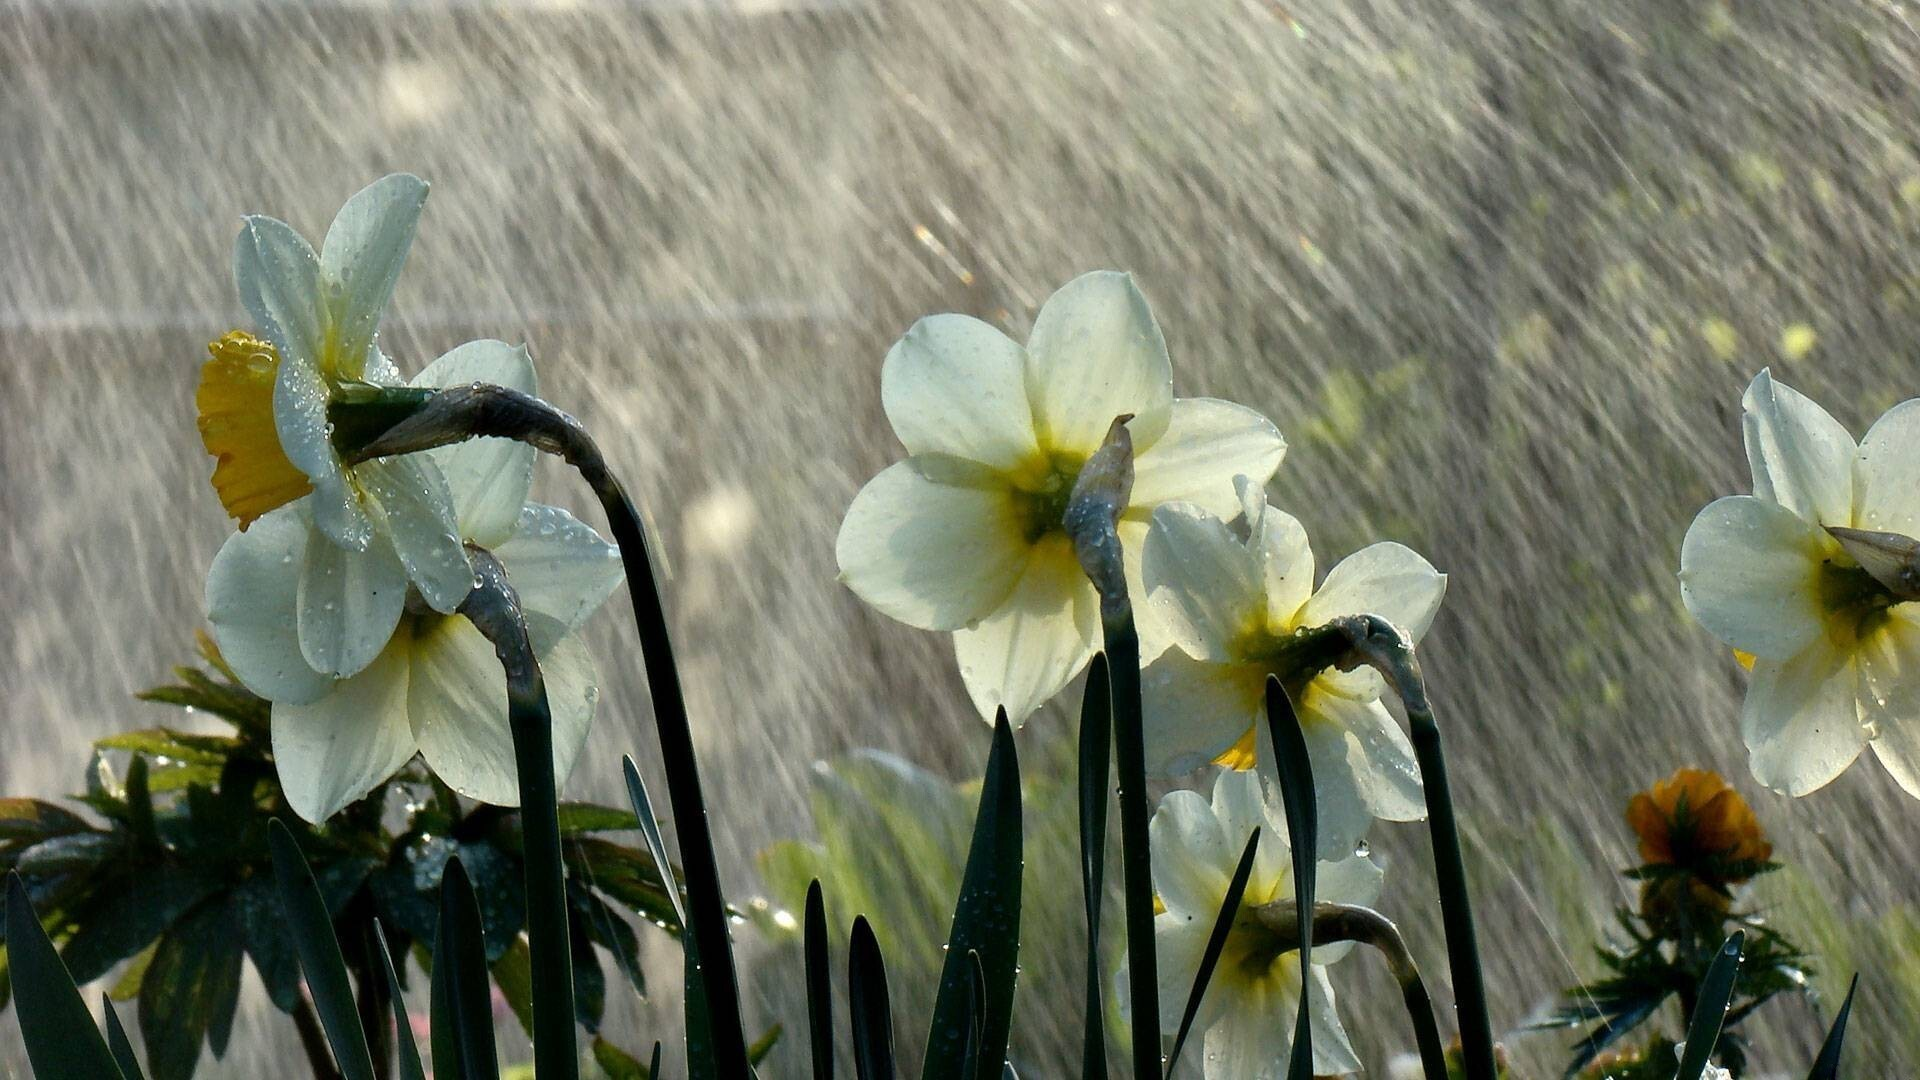 Beautiful rain on flower wallpaper hd wallpapers thecheapjerseys Gallery